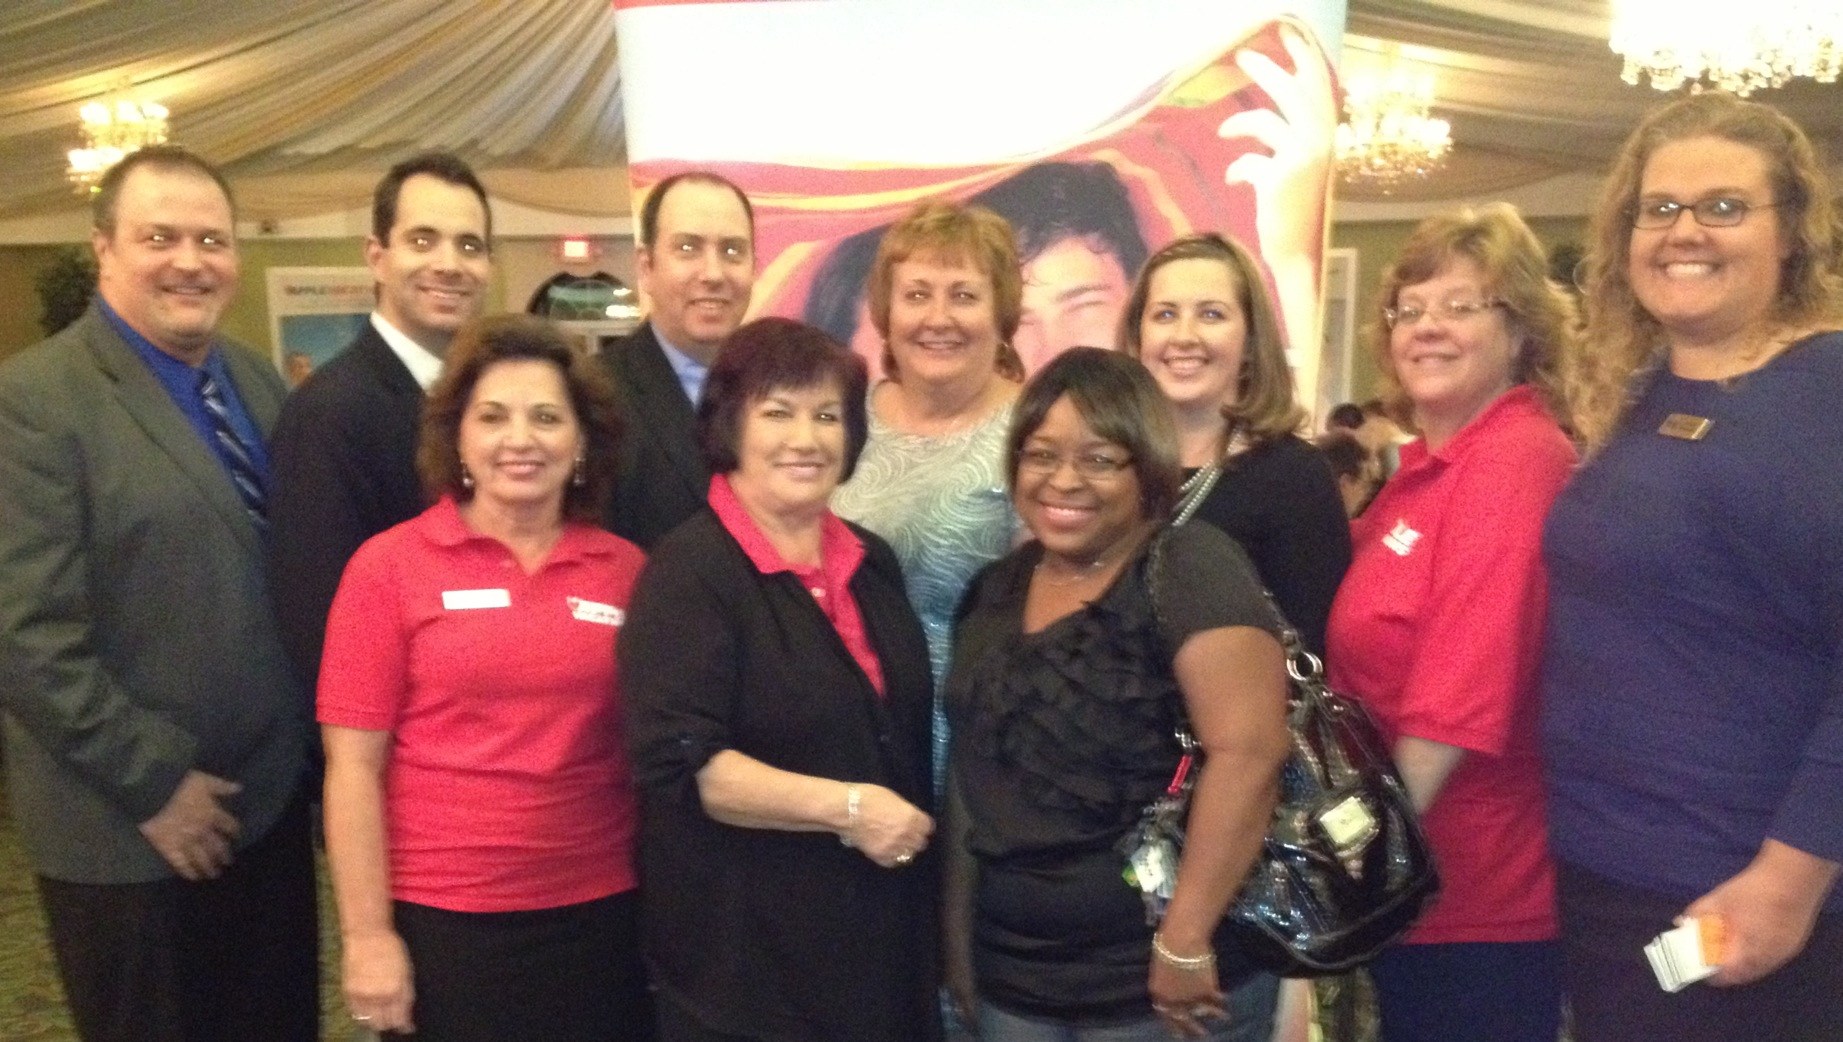 Apple Vacations team in Cherry Hill, N.J.